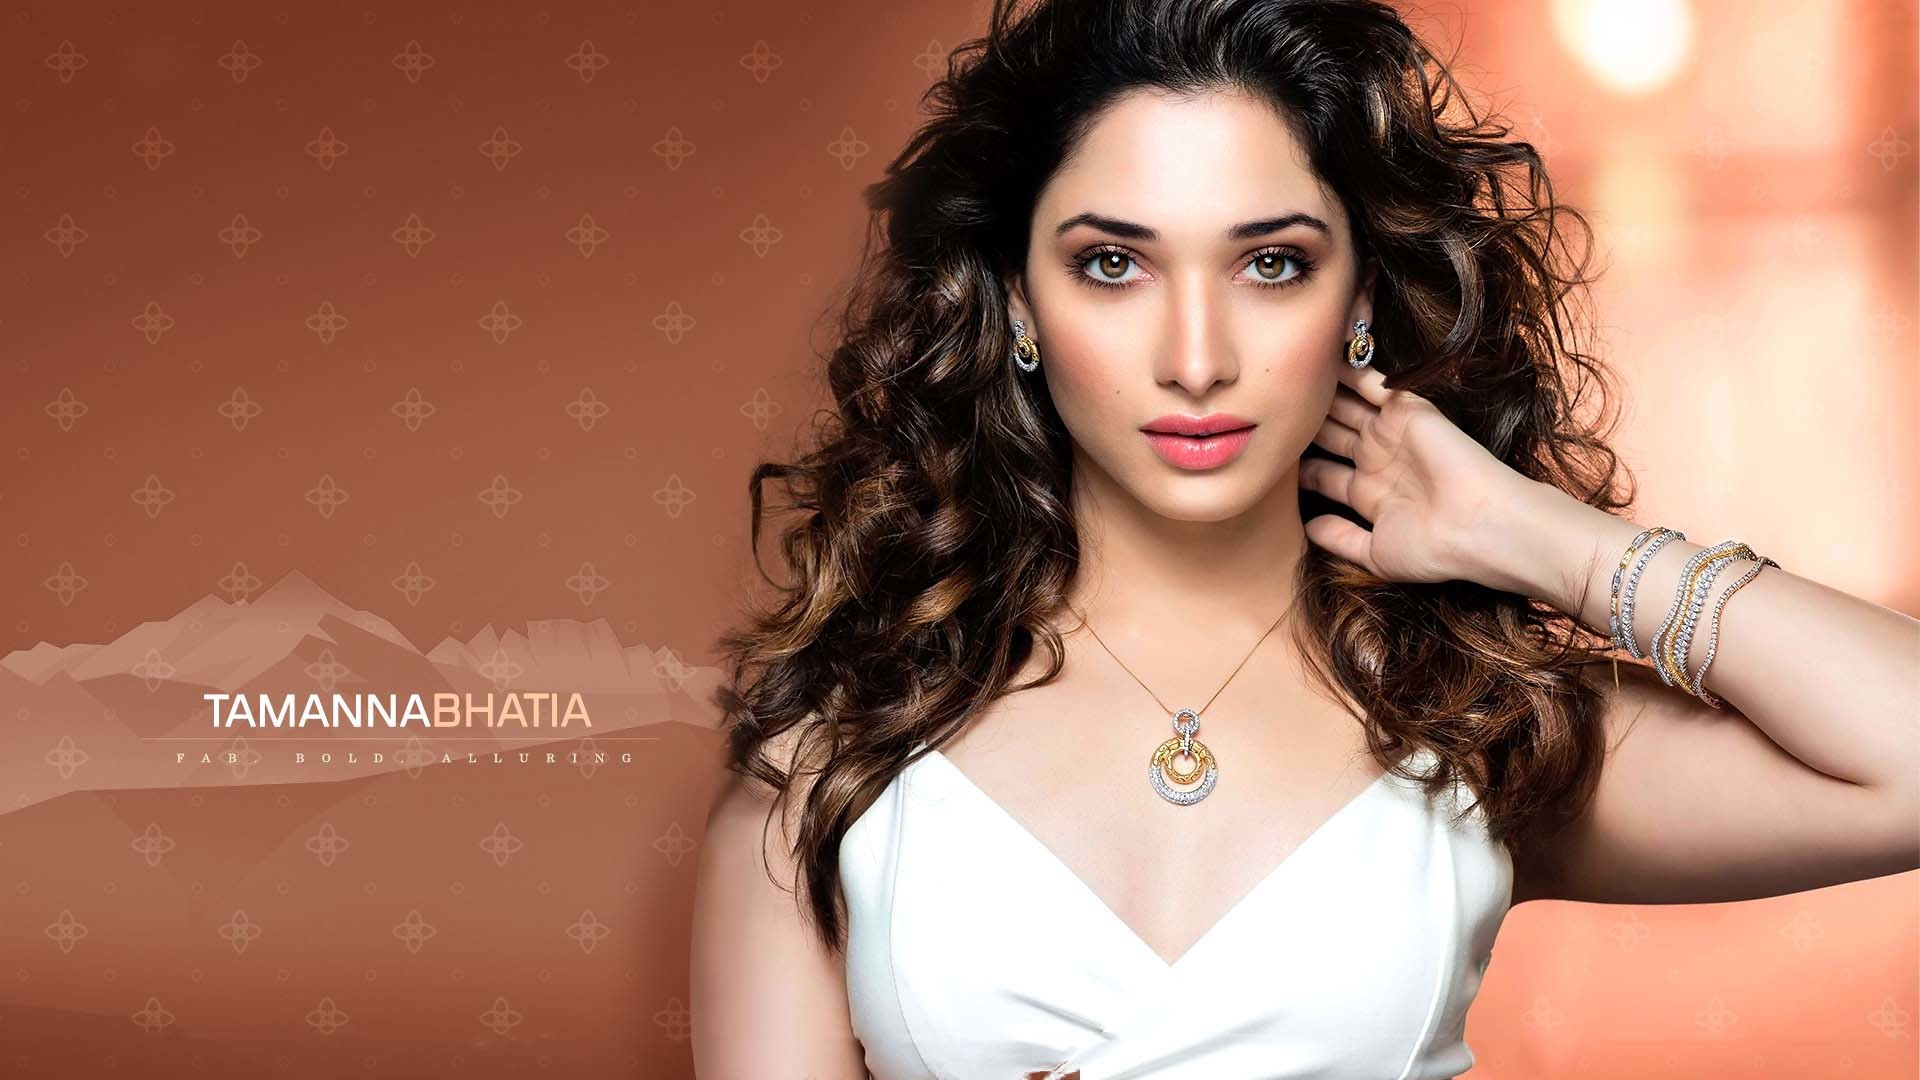 tamanna bhatia hd wallpapers 1920x1080 (83+ images)